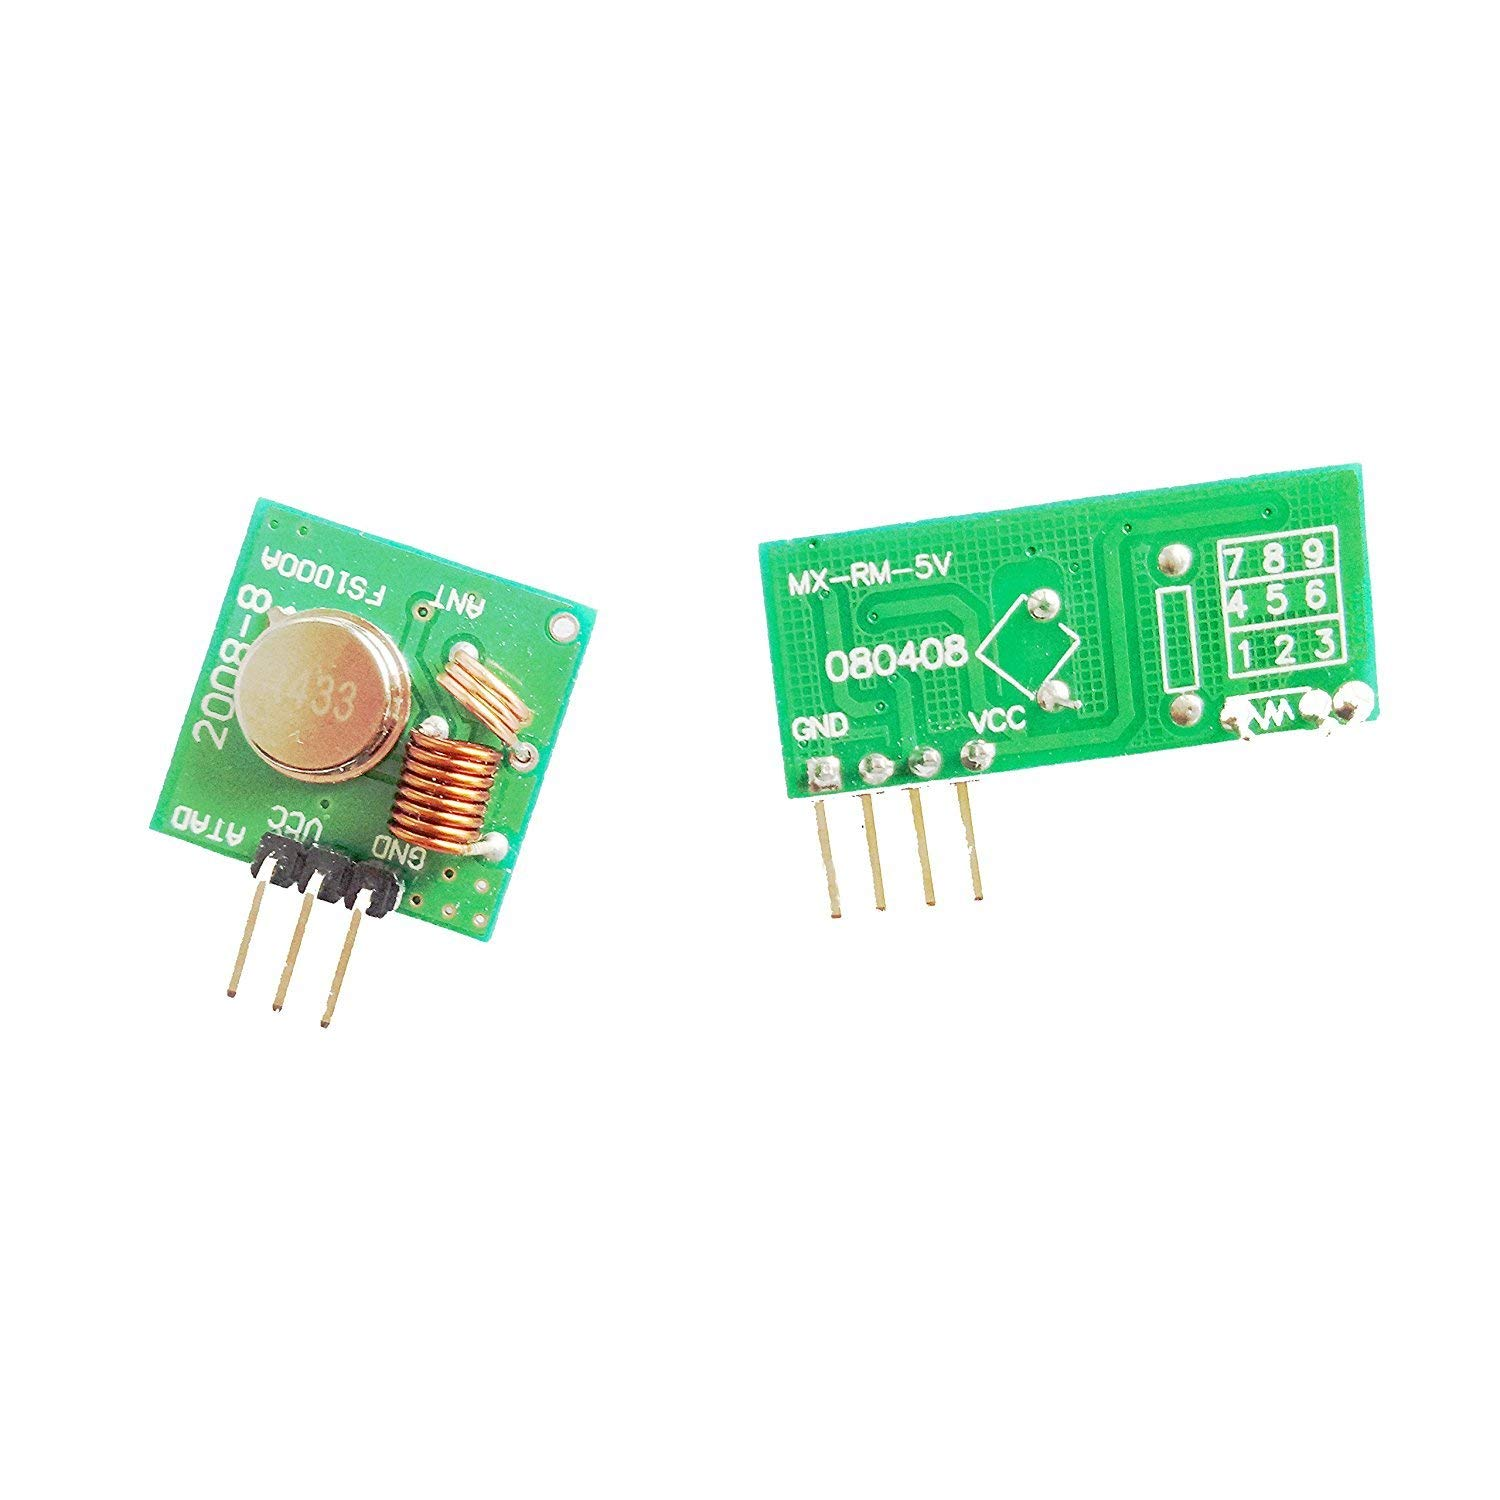 433MHz RF Wireless Transmitter and Receiver Module for Arduino/Arm/McU/Raspberry pi/Wireless DIY